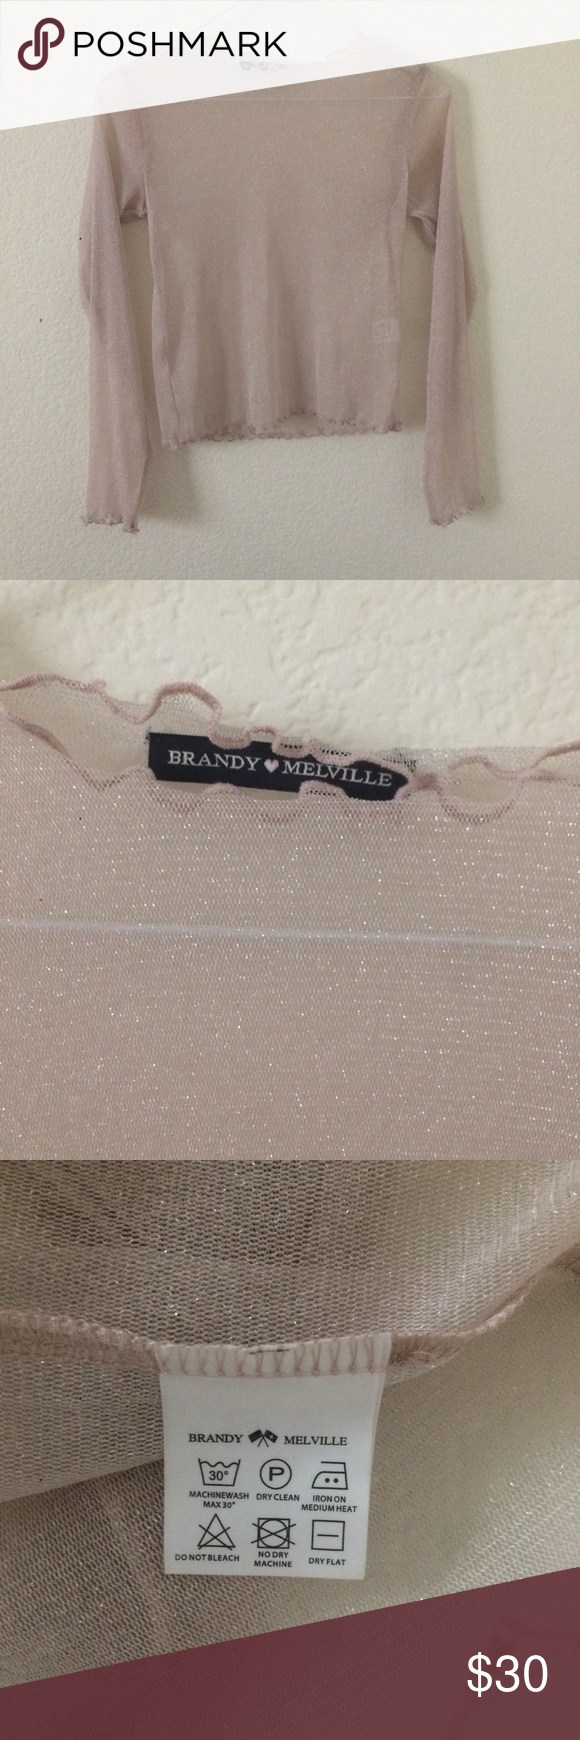 NWOT brandy melville pink rene glitter top NEW WITHOUT TAGS  sheer long sleeve mesh top  has quite a lot of stretch so it could maybe fit up to a medium  no trades Brandy Melville Tops Tees - Long Sleeve